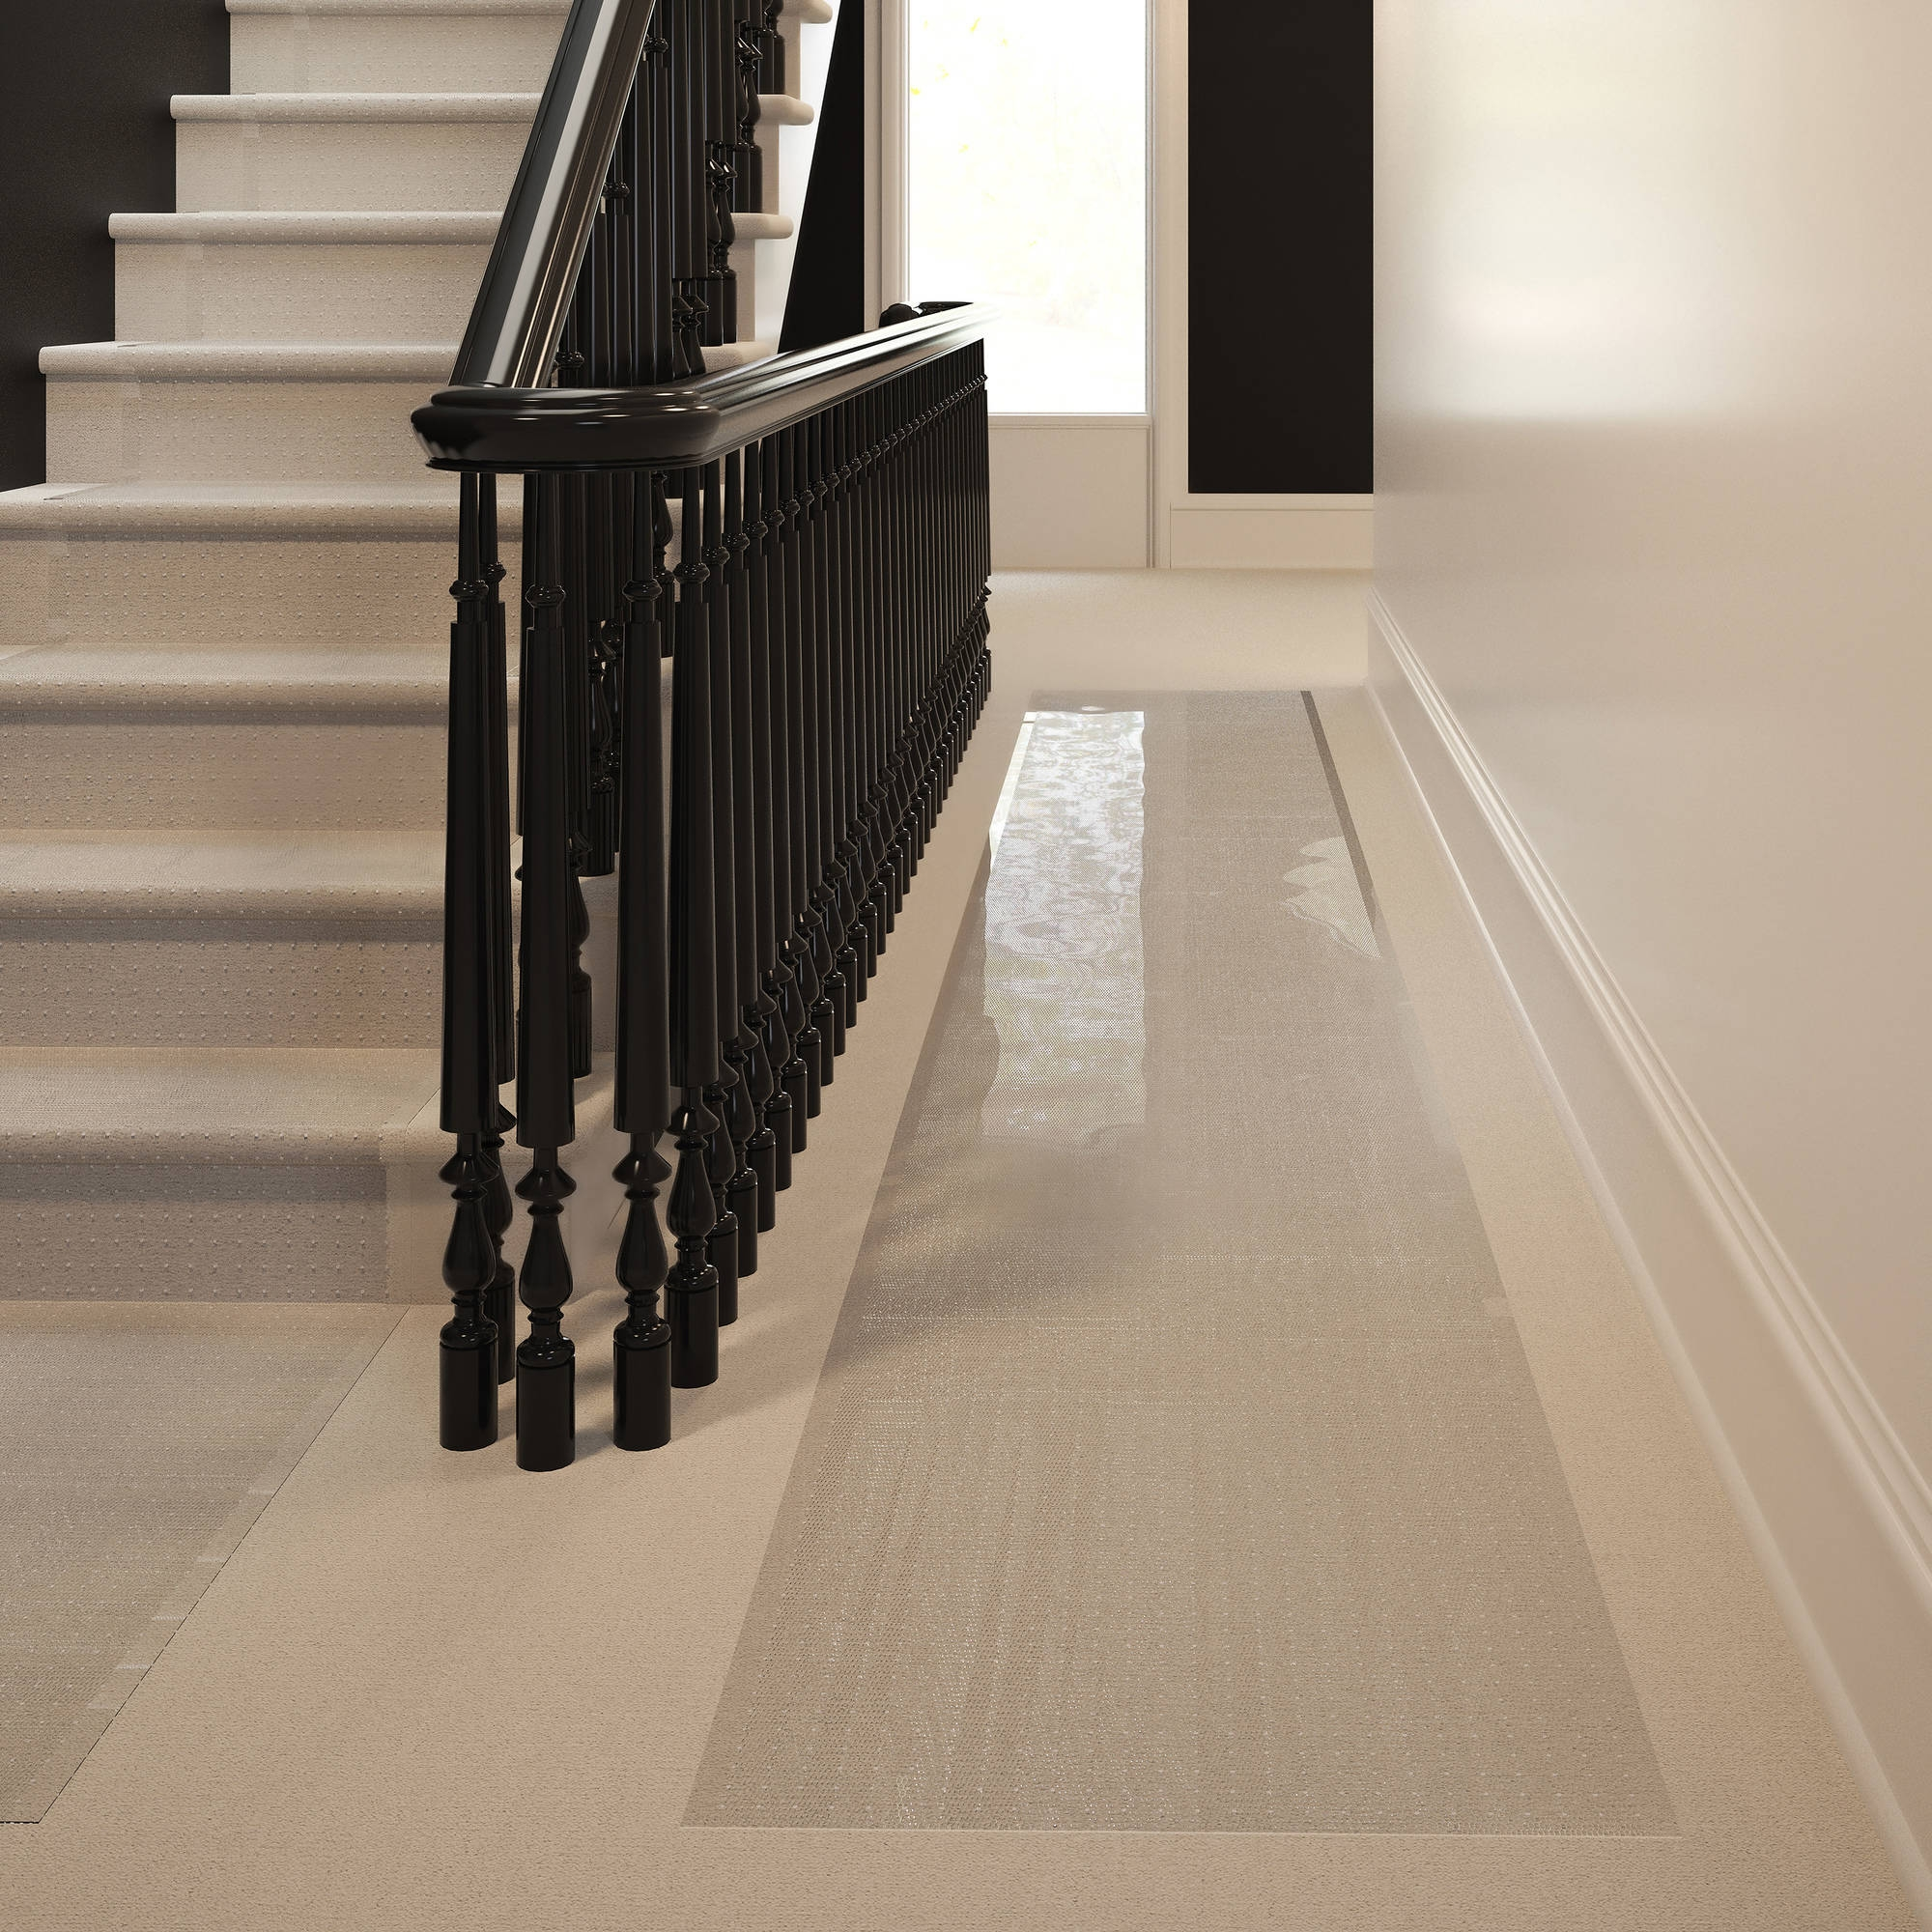 Mainstays Low Pile Carpet Vinyl Runner Clear 2 X 12 Walmart Inside Hallway Runners 12 Feet (#12 of 20)